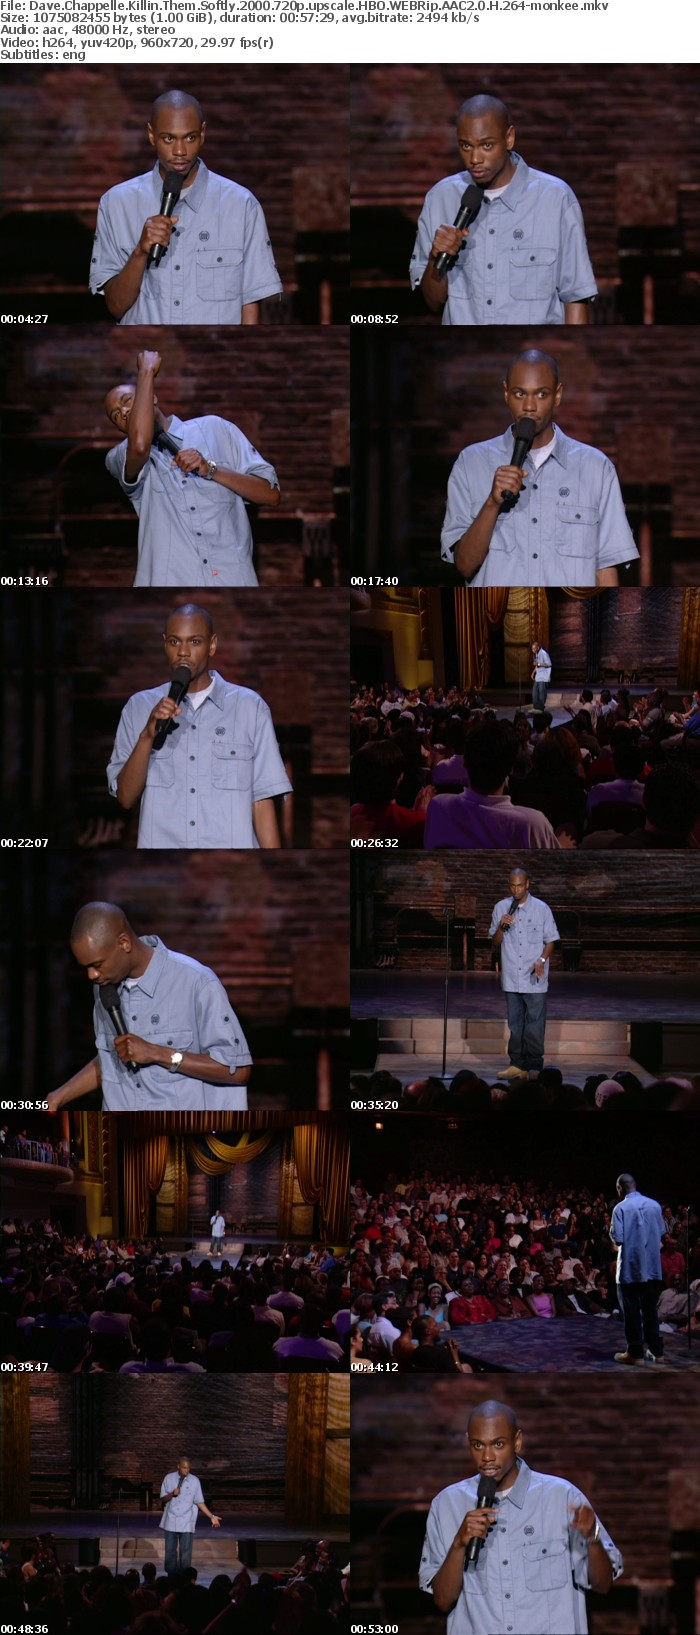 Dave Chappelle Killin Them Softly 2000 720p upscale HBO WEBRip AAC2 0 H 264 monkee